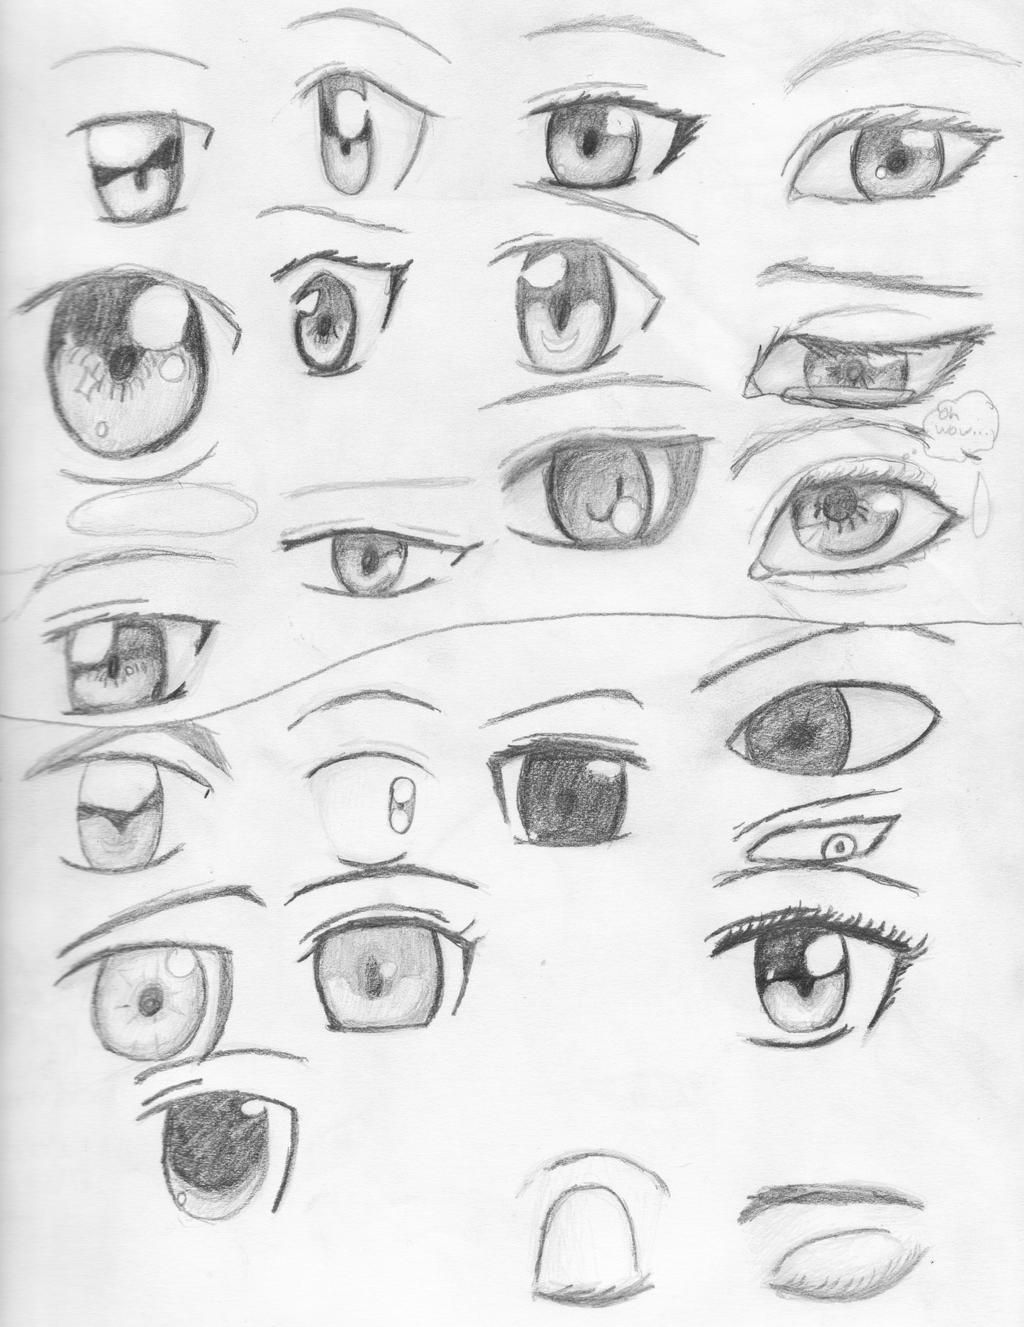 Anime Eyes By Visiouscatlovet On Deviantart In 2020 Anime Eyes Cartoon Eyes Drawing Cartoon Eyes